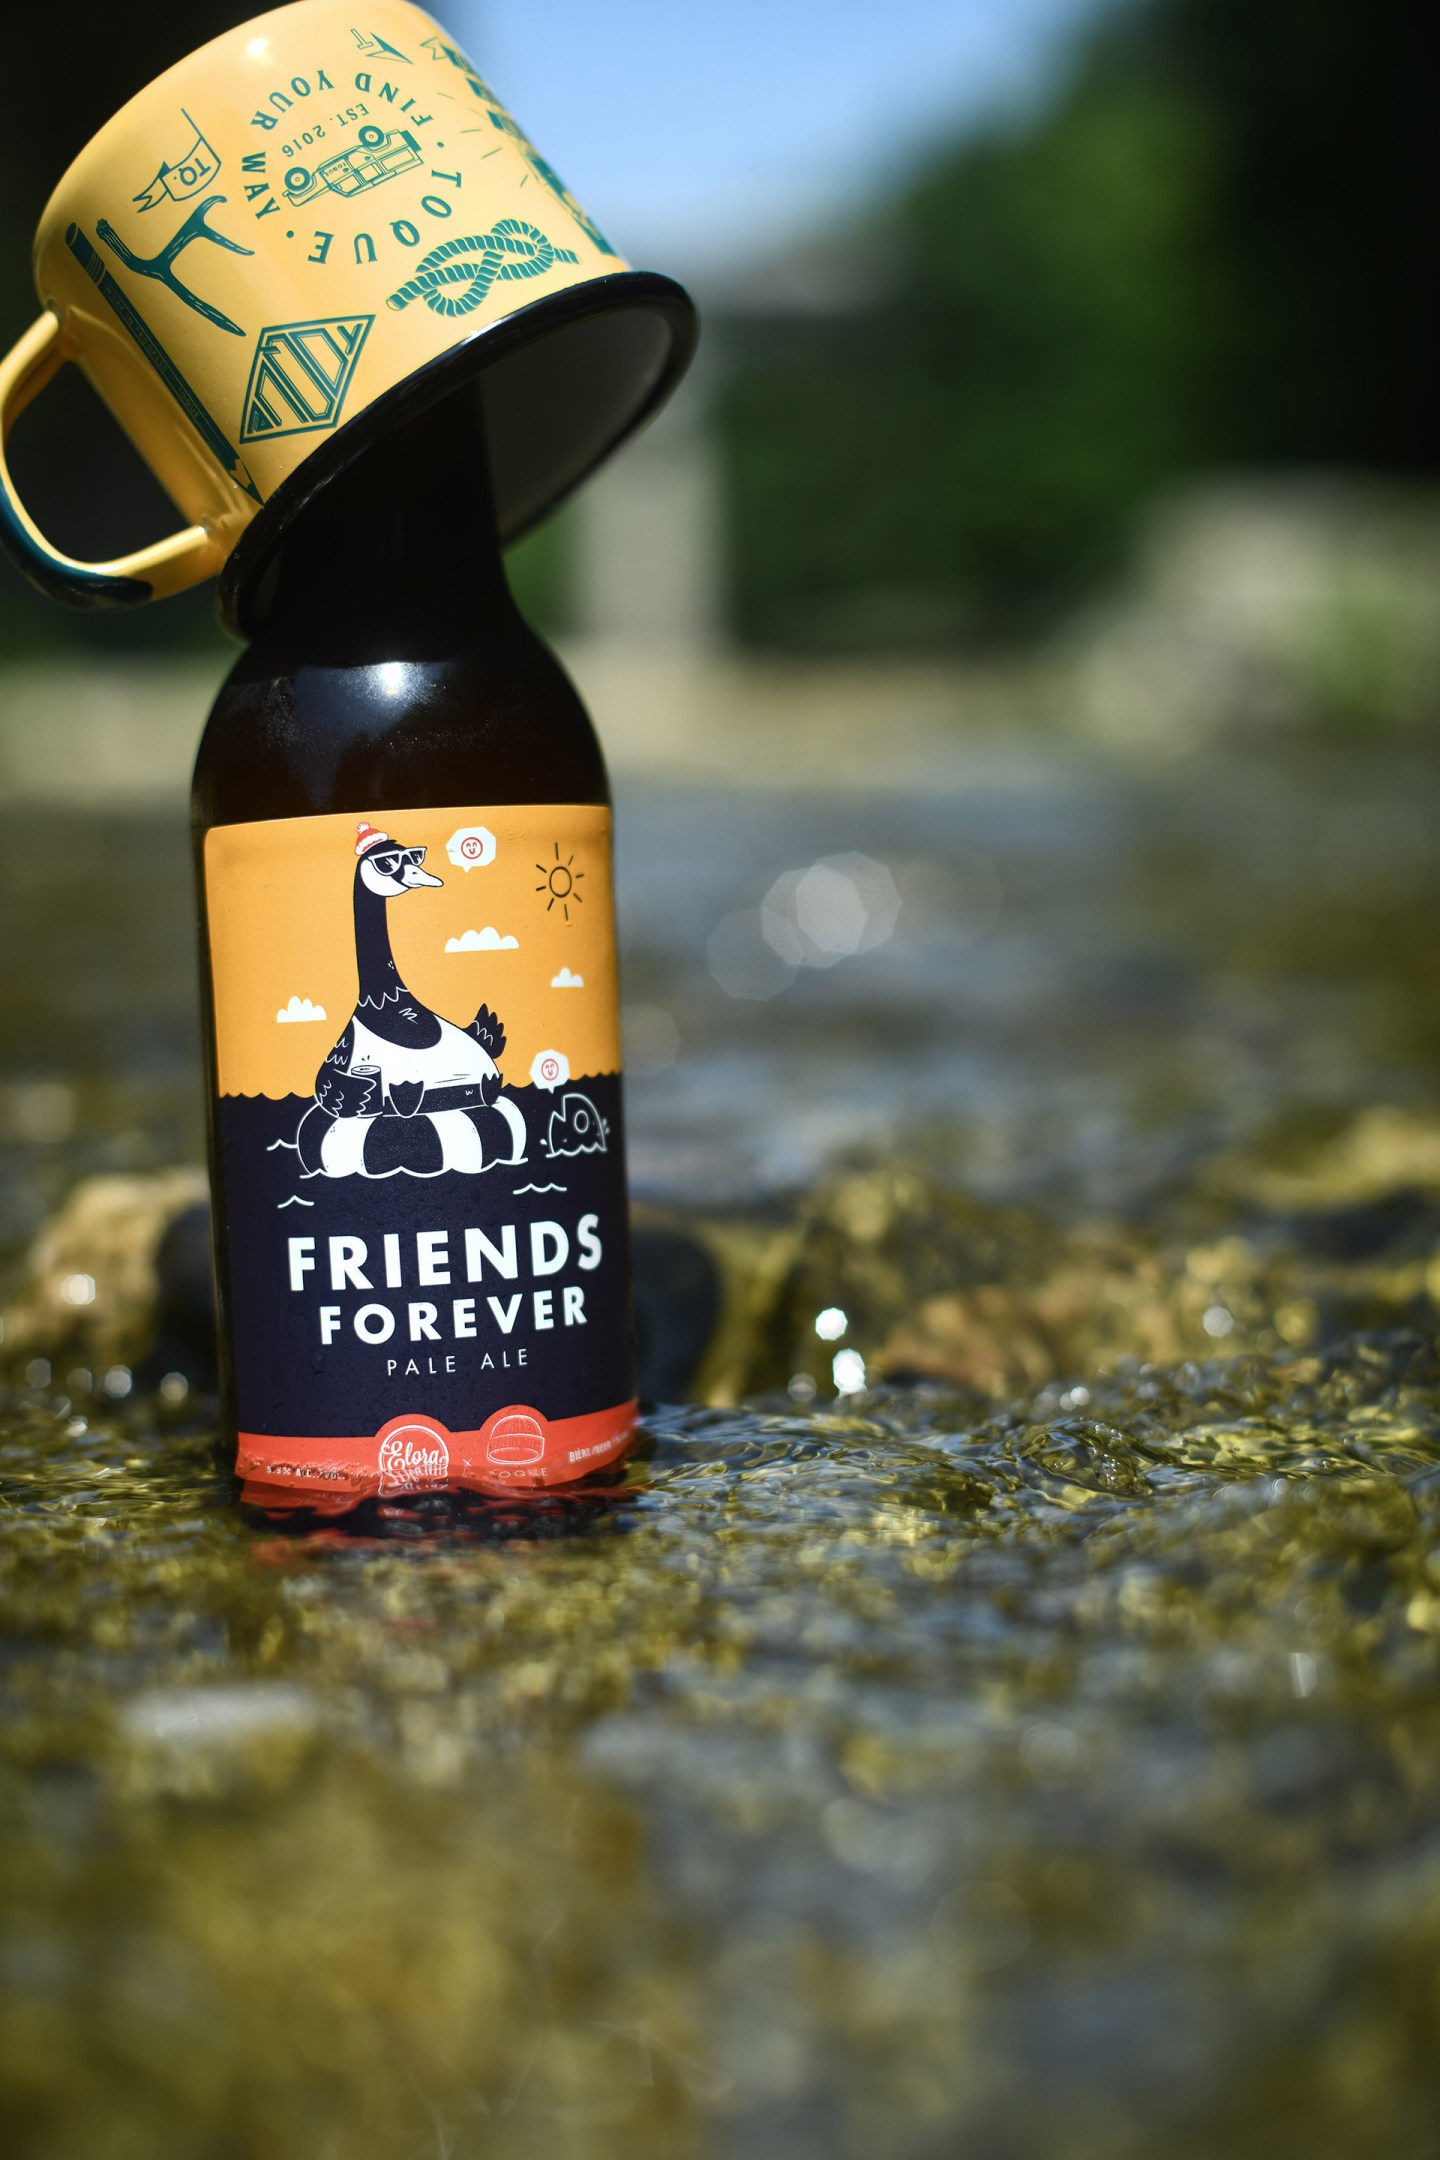 Friends Forever:  A TOQUE x Elora Brewing Company collaboration